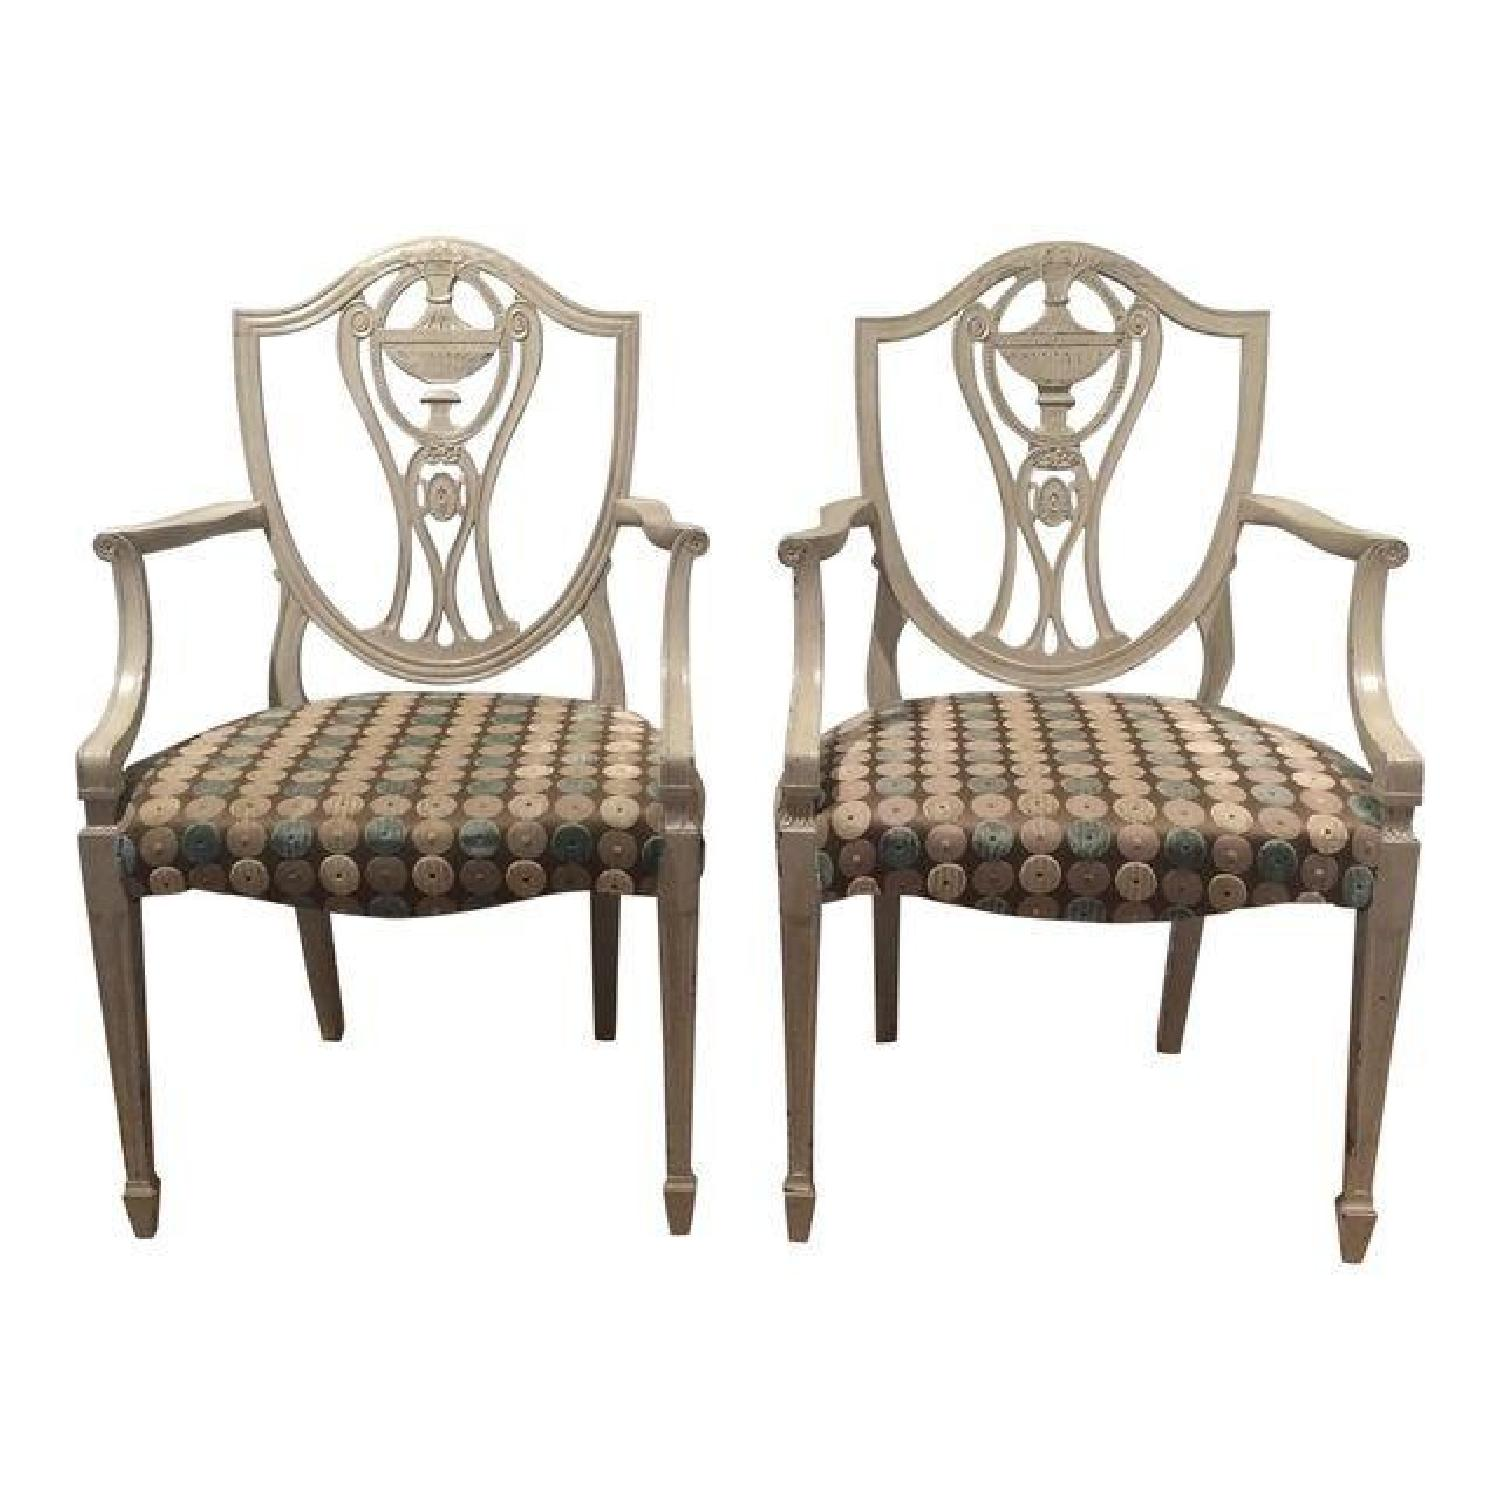 Transitional Upholstered Chairs - image-0